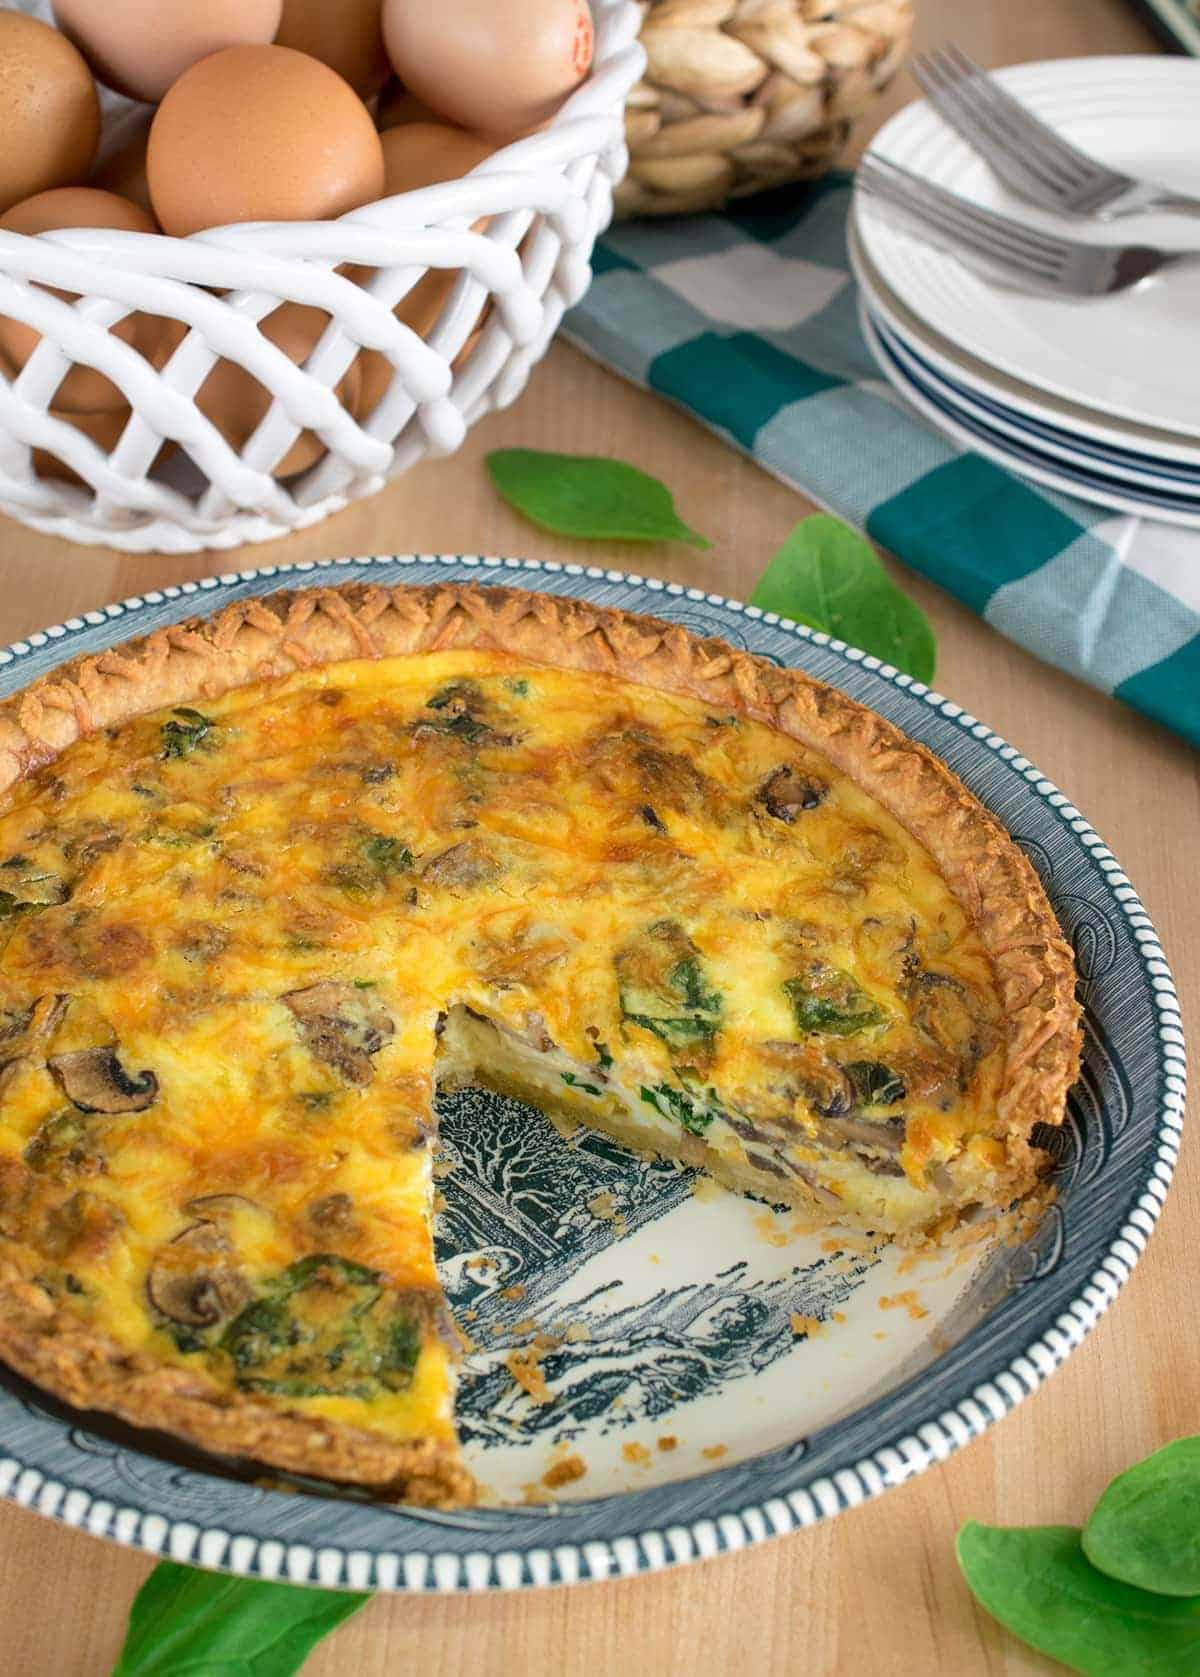 Spinach and mushroom quiche with crust in pie plate with one missing piece. Basket of eggs and stack of plates in background.